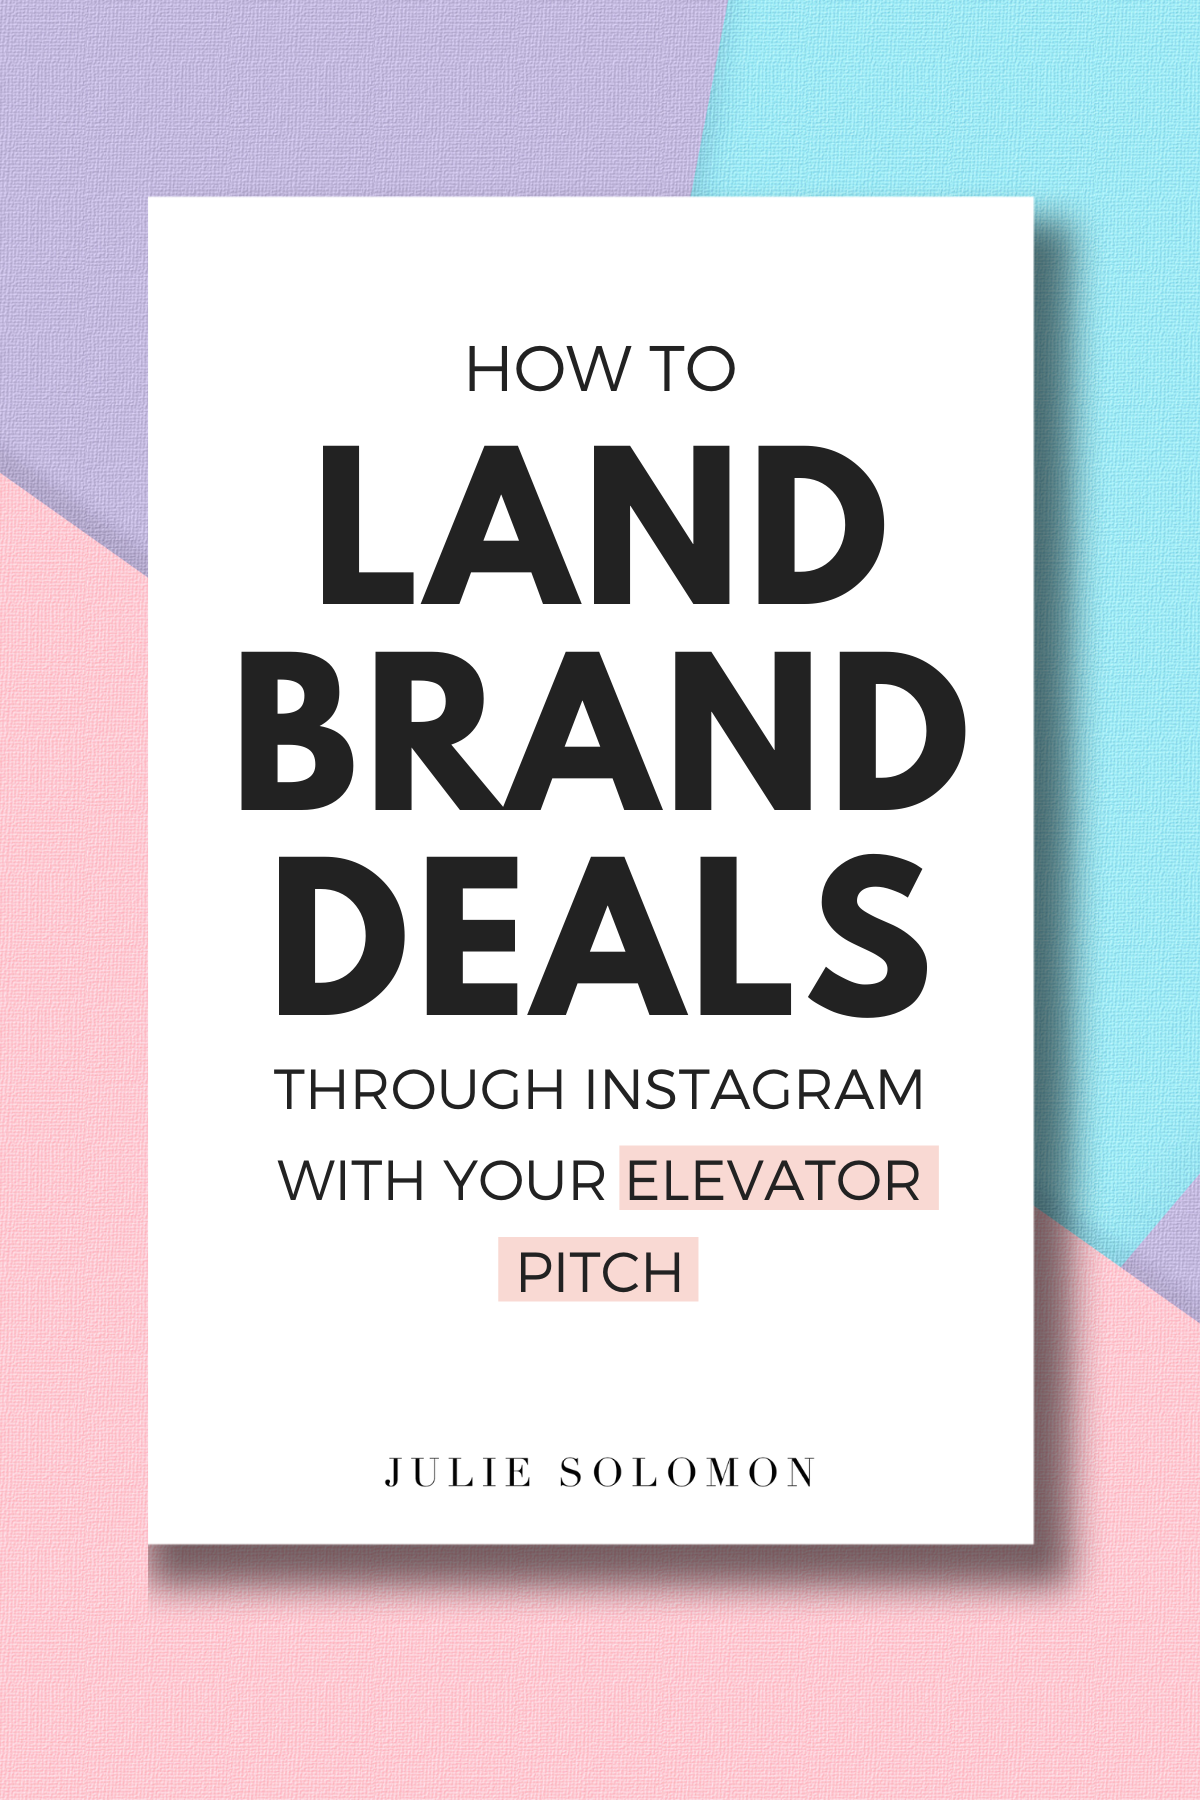 036 How to Land Brand Deals Through Instagram with Your